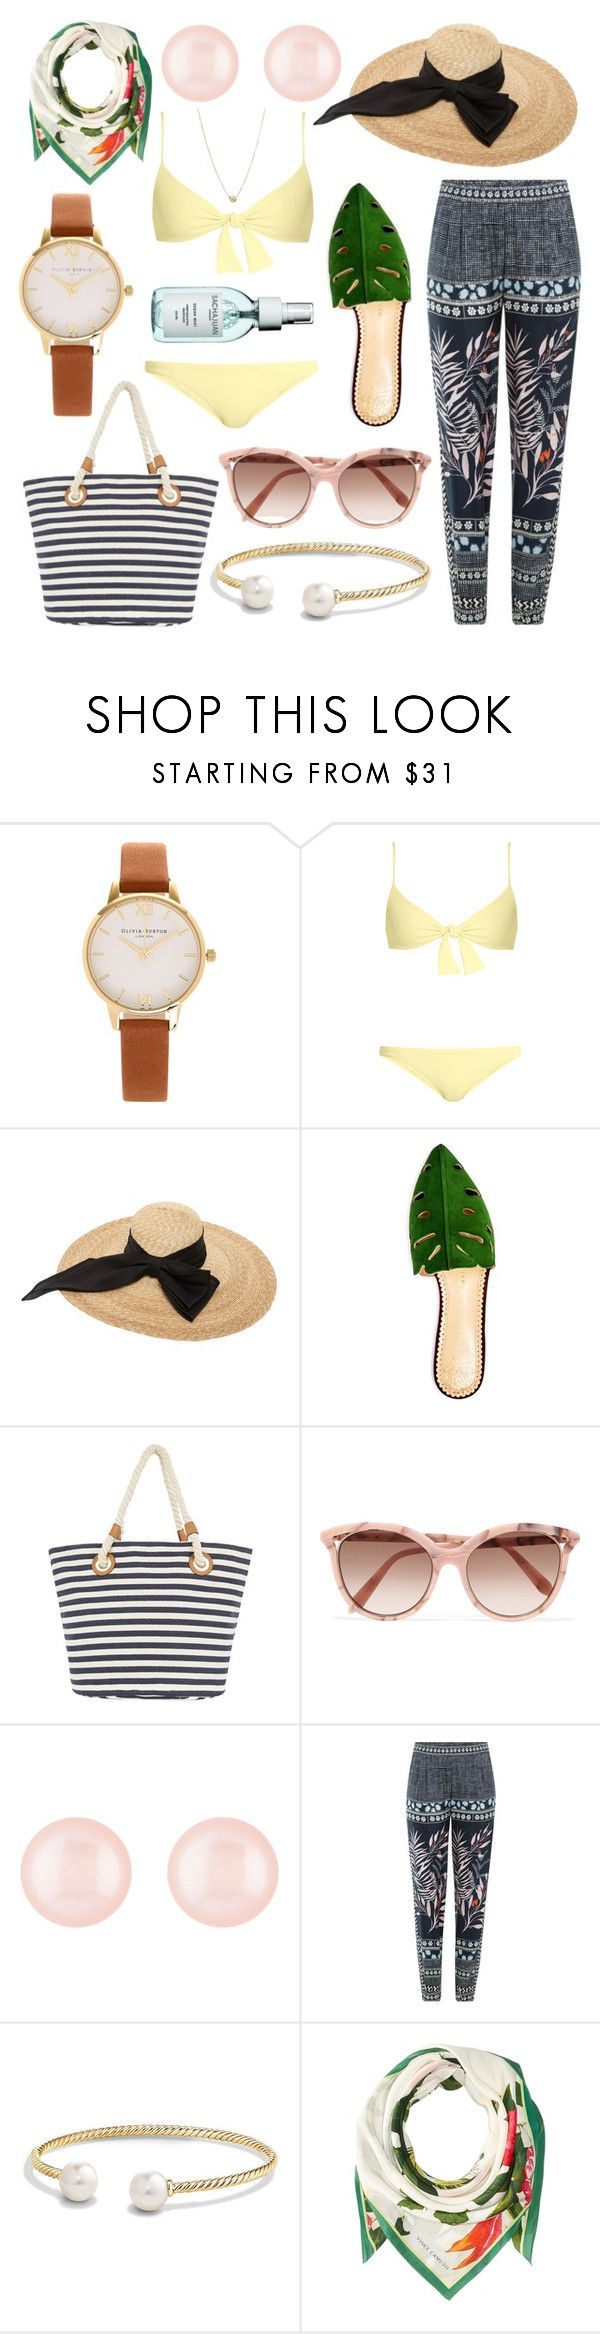 """""""Tropical Vacation"""" by reesepelletier ❤ liked on Polyvore featuring Olivia Burton, Melissa Odabash, Kreisi Couture, Charlotte Olympia, Victoria Beckham, Henri Bendel, Diane Von Furstenberg, David Yurman, Vince Camuto and ZoÃ« Chicco"""